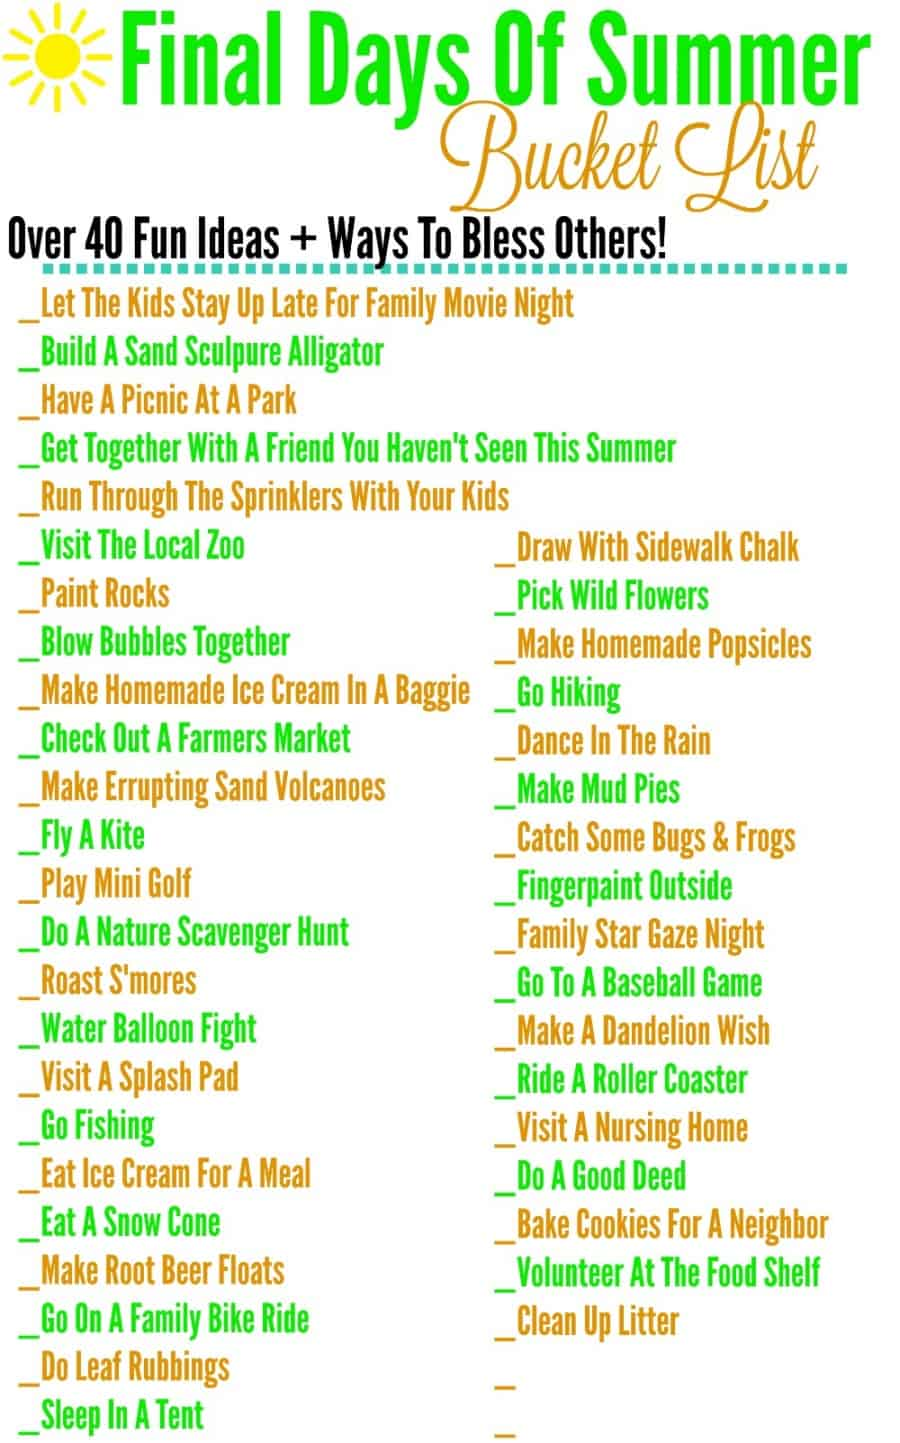 Final Days Of Summer Bucket List + Ways To Bless Others (Free Printable)